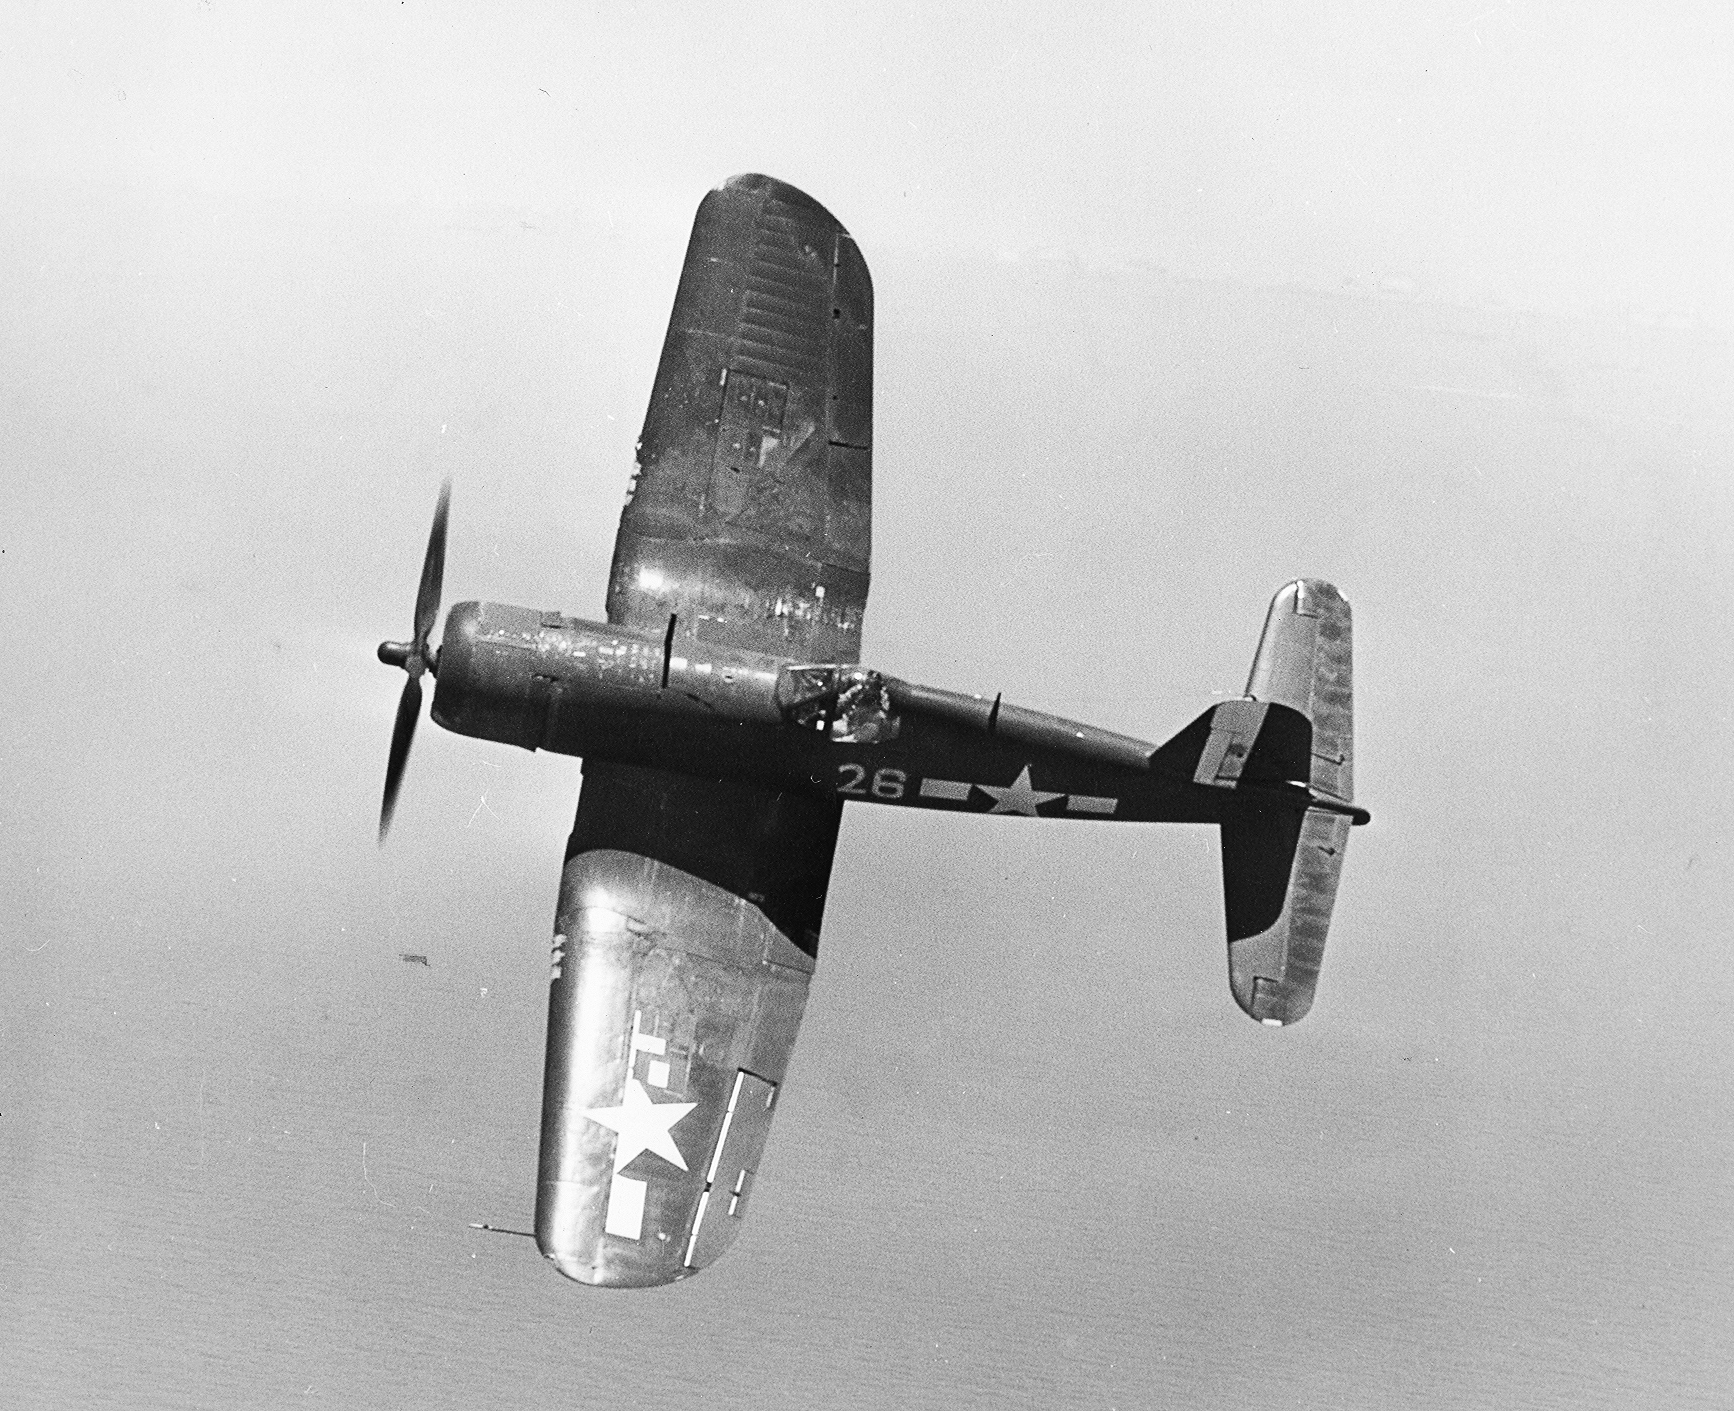 Vought-F4U-1D-Corsair-VBF-10-White-26-CV